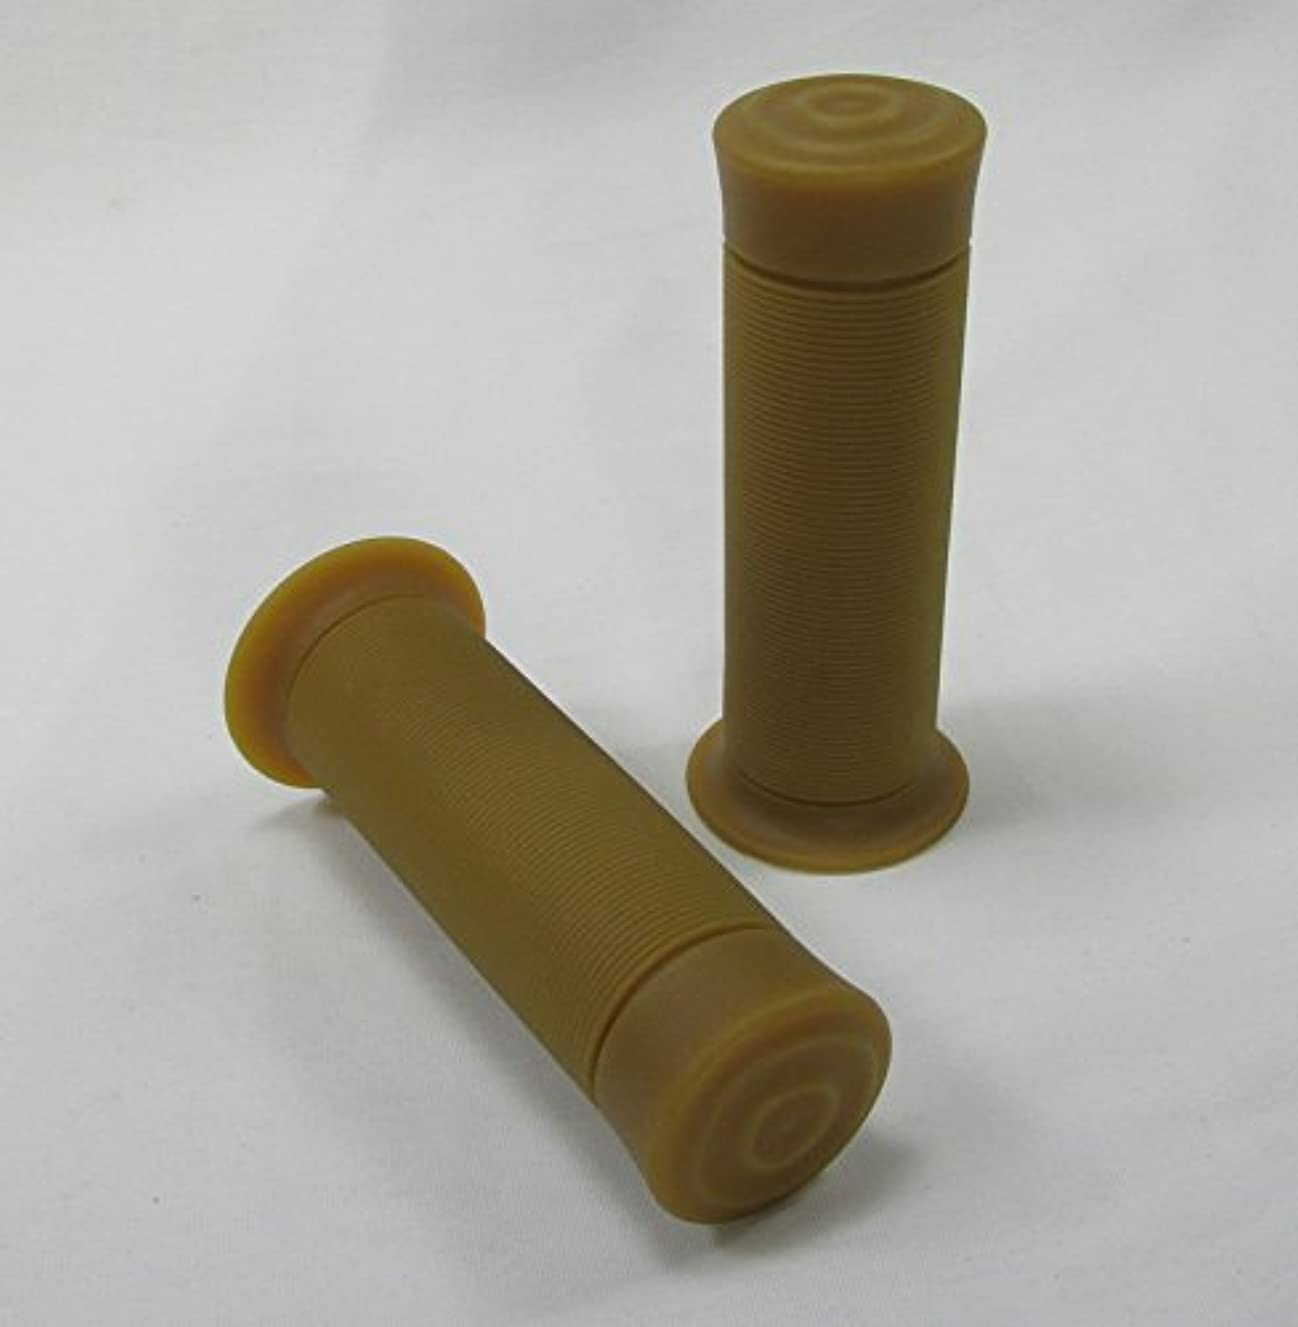 BMX Moto Style Grips - Natural Gum Rubber Tan Brown (NOT BILTWELL BRAND) - For 1